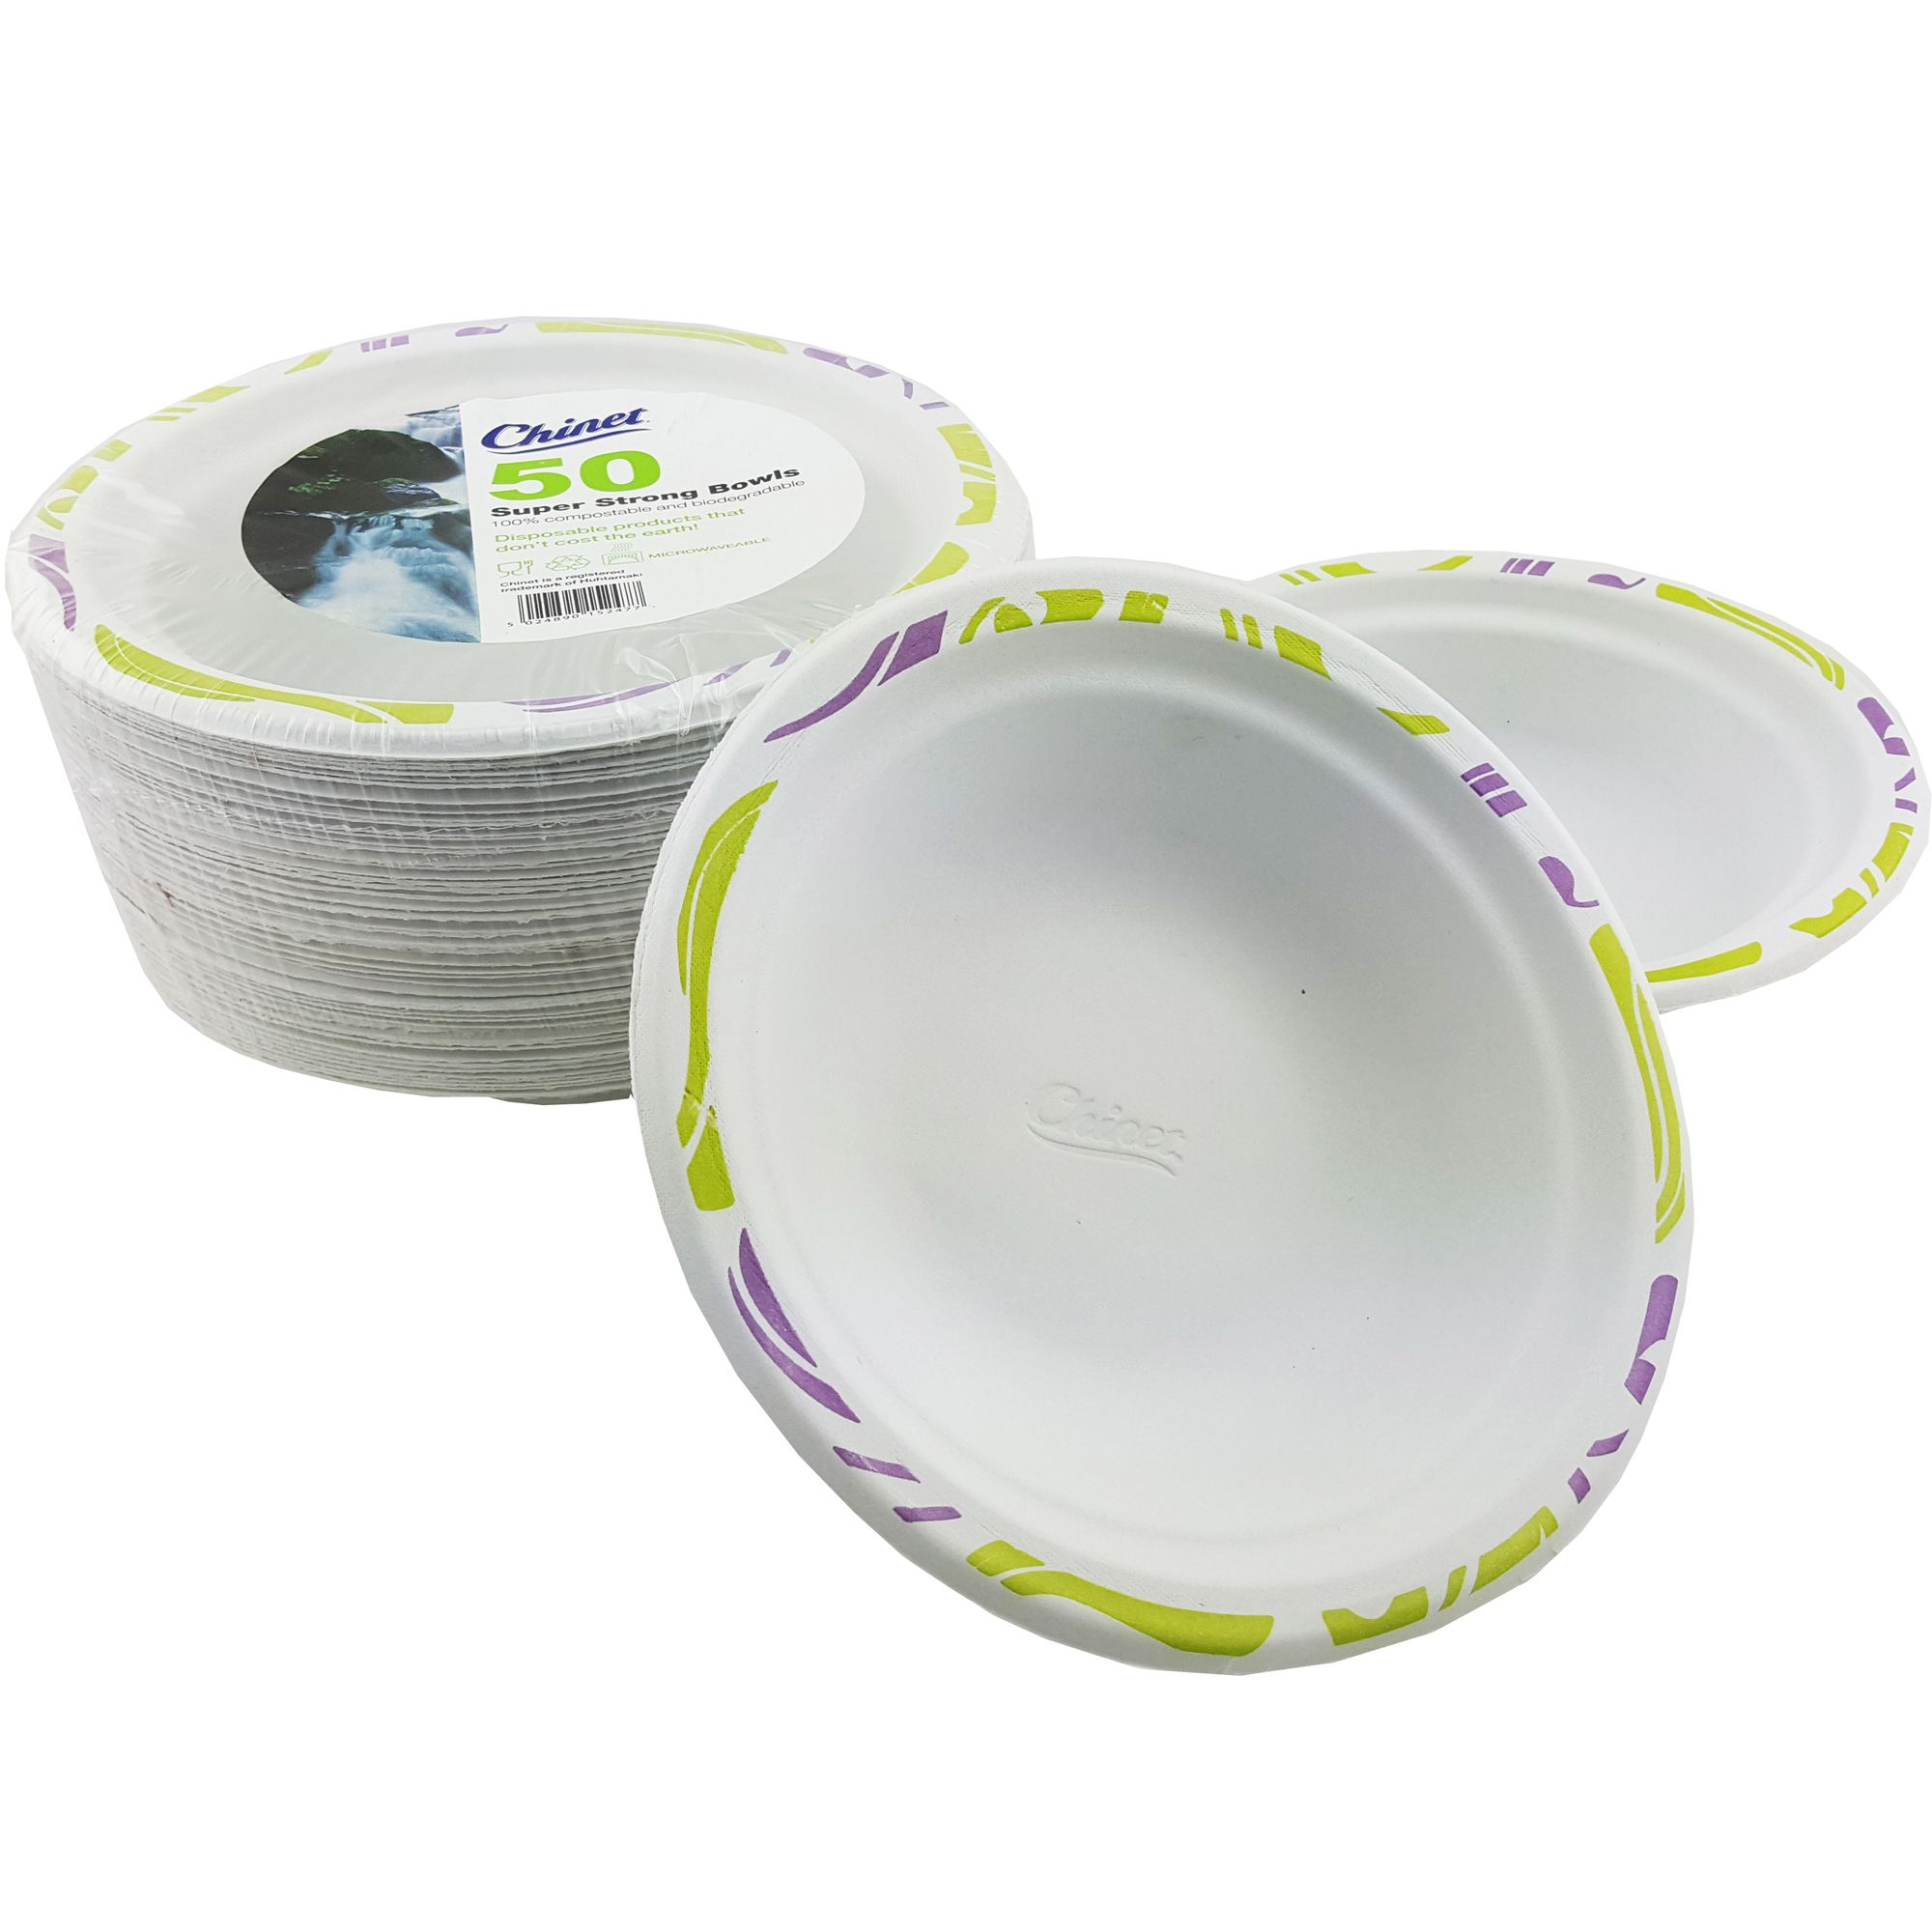 sc 1 st  Bluestar Packaging Supplies & Chinet 17cm 40cl Disposable Microwave Safe Bowls Pack of 50